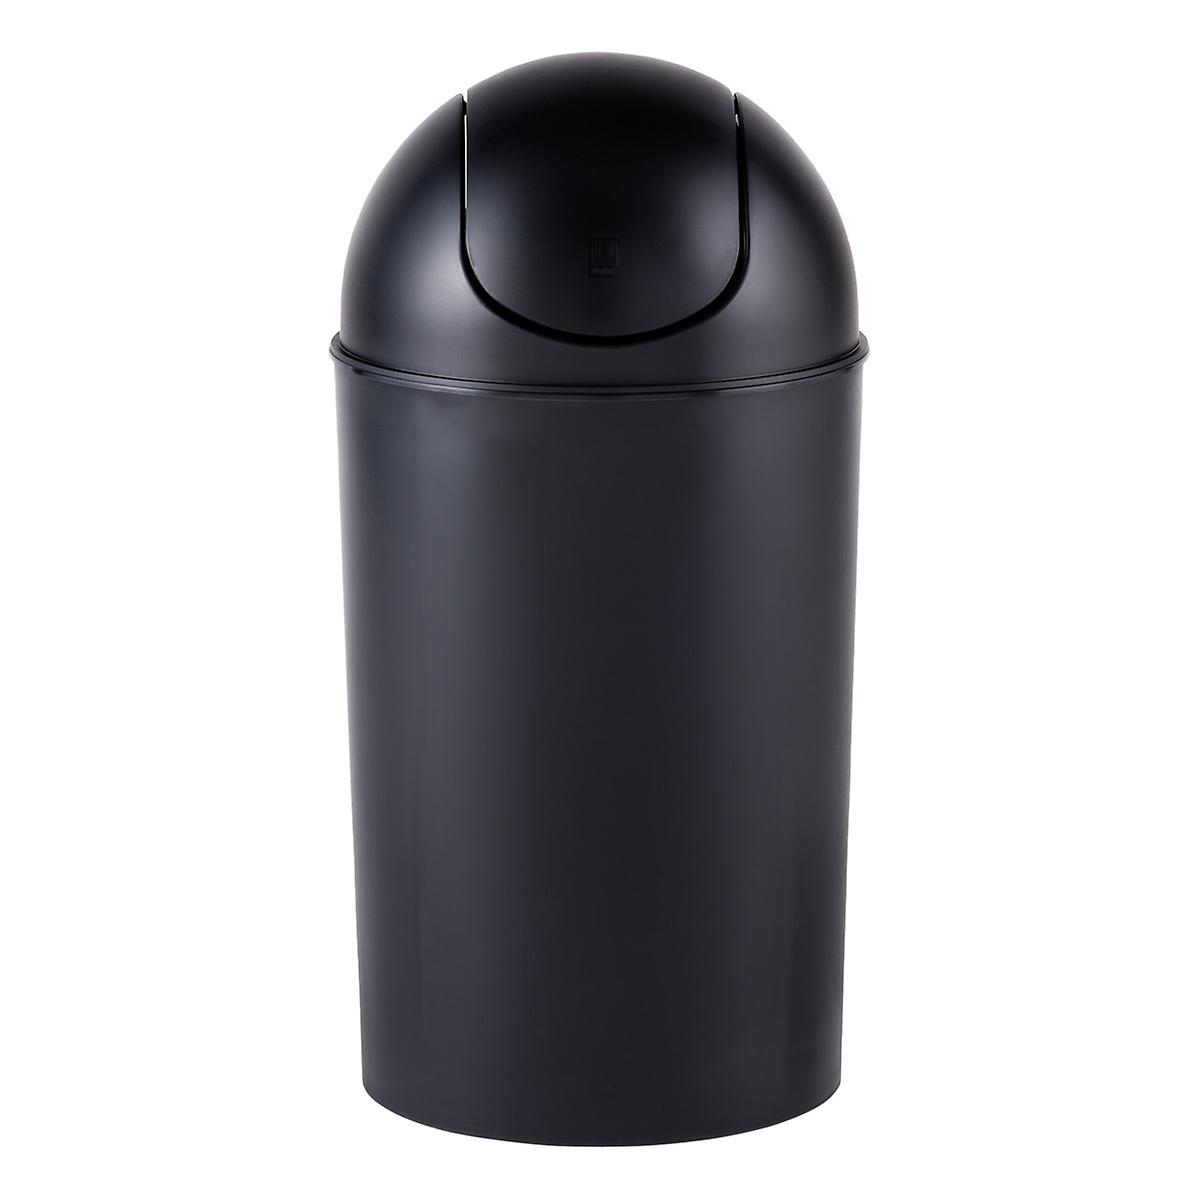 Umbra Black 10 gal. Swing-Lid Grand Trash Can